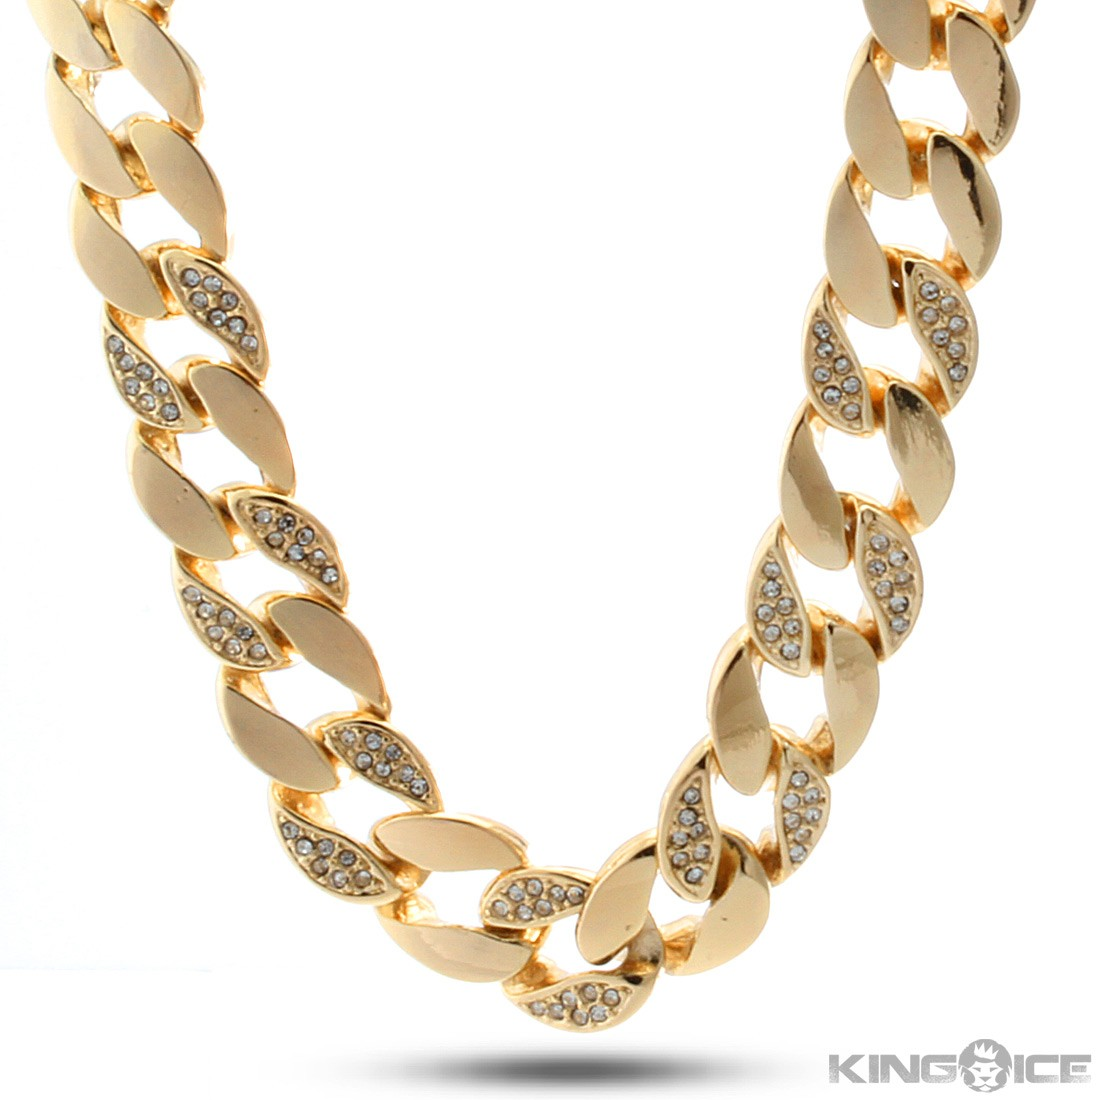 Gold chain clipart - Clipground